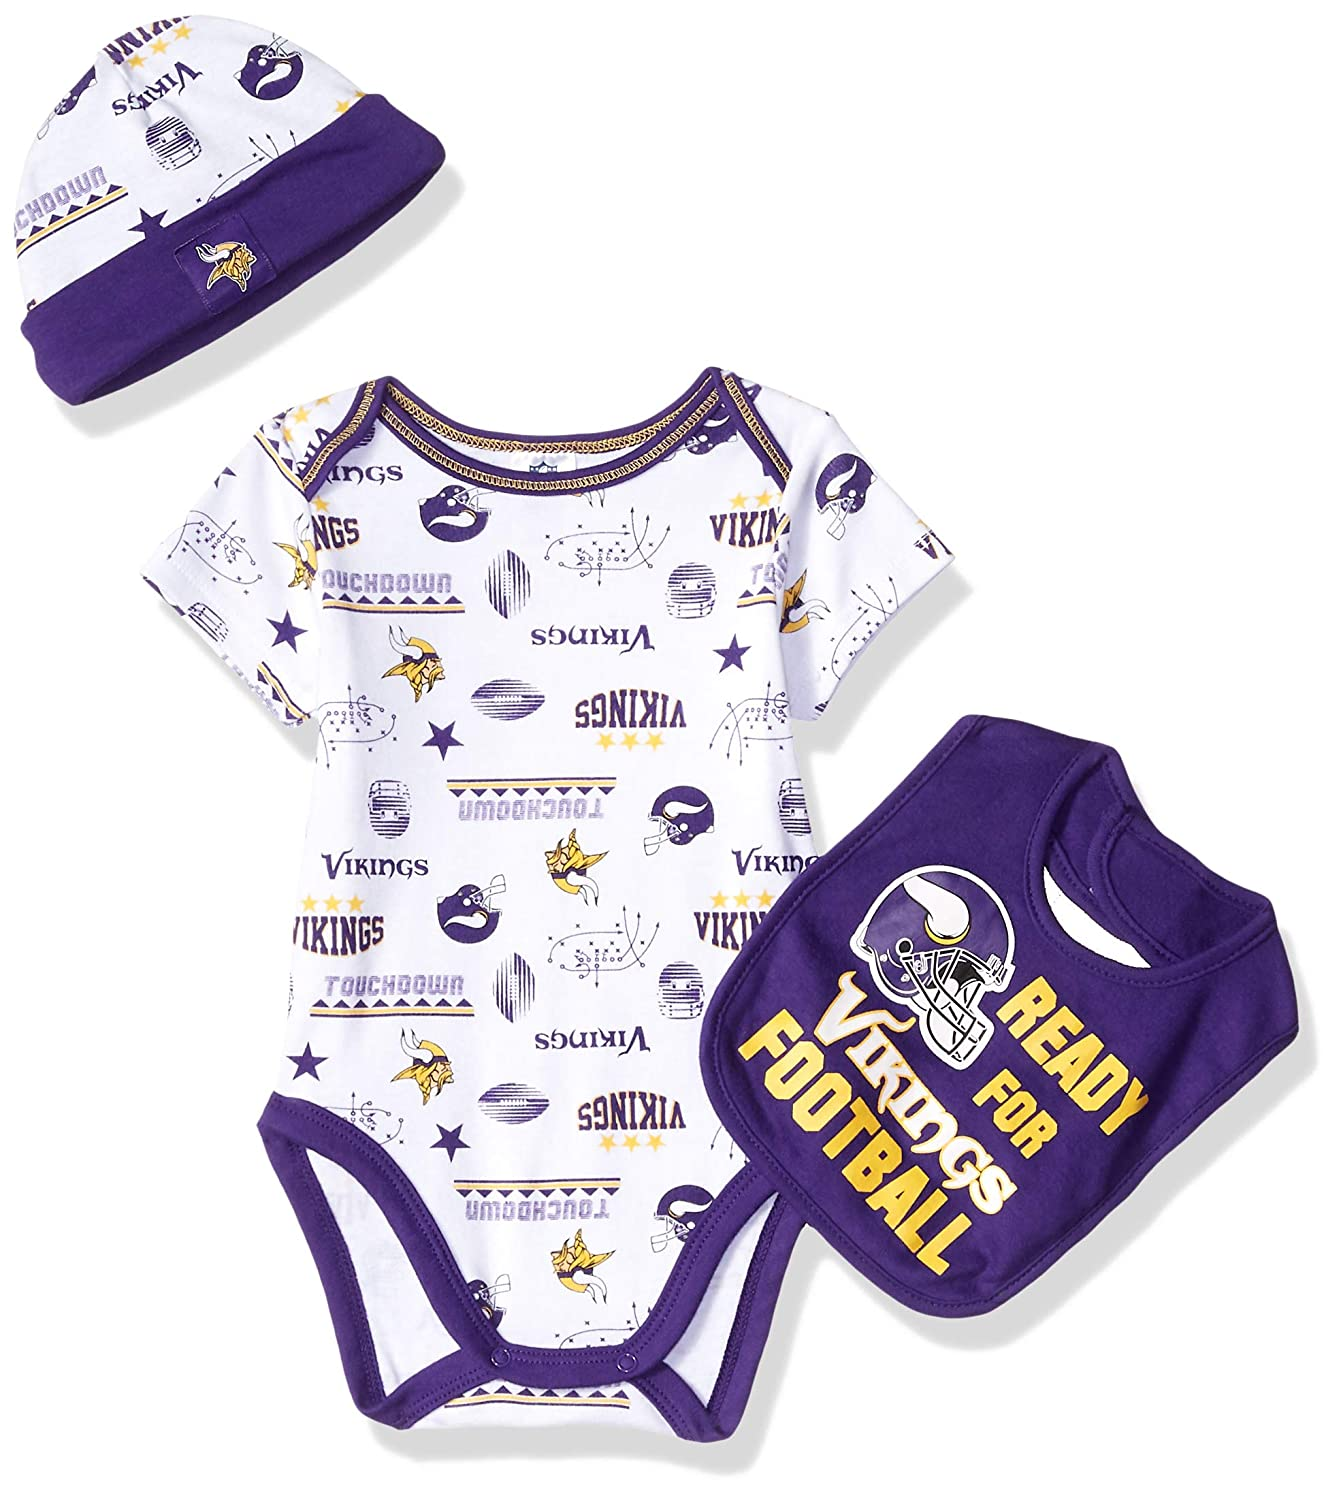 b700fdbcf76 Amazon.com : NFL Minnesota Vikings Unisex-Baby Bodysuit, Bib & Cap Set,  Purple, 3-6 Months : Sports & Outdoors